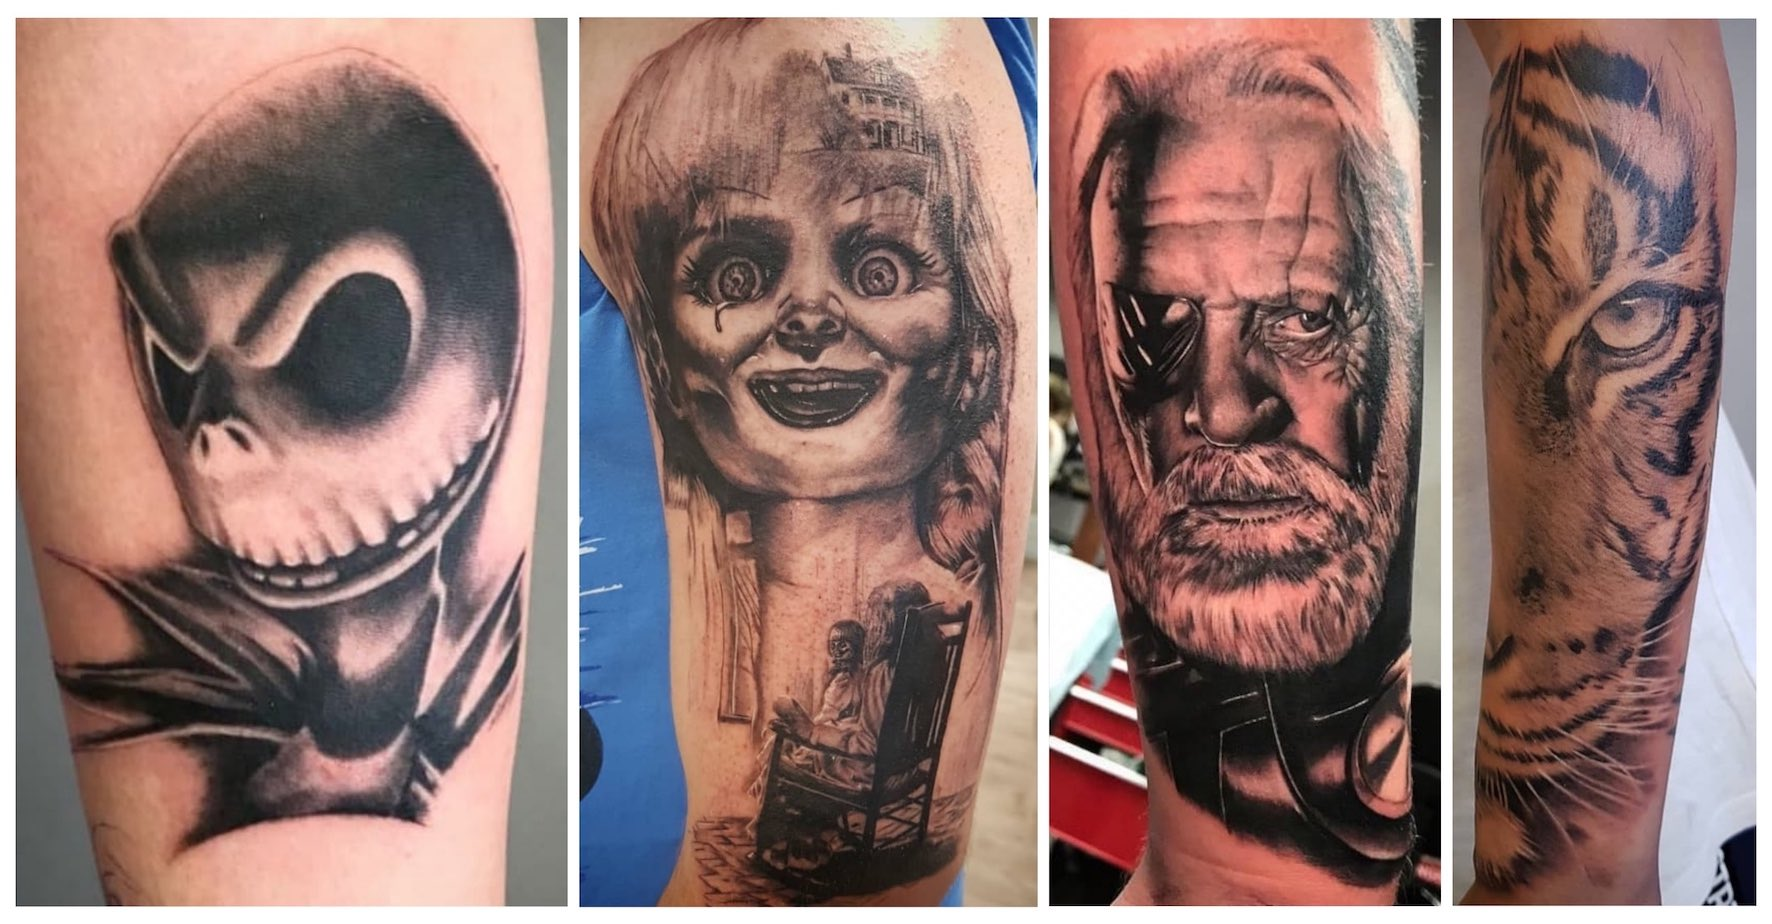 A selection of black and grey realism tattoos done by Tony Barcelos